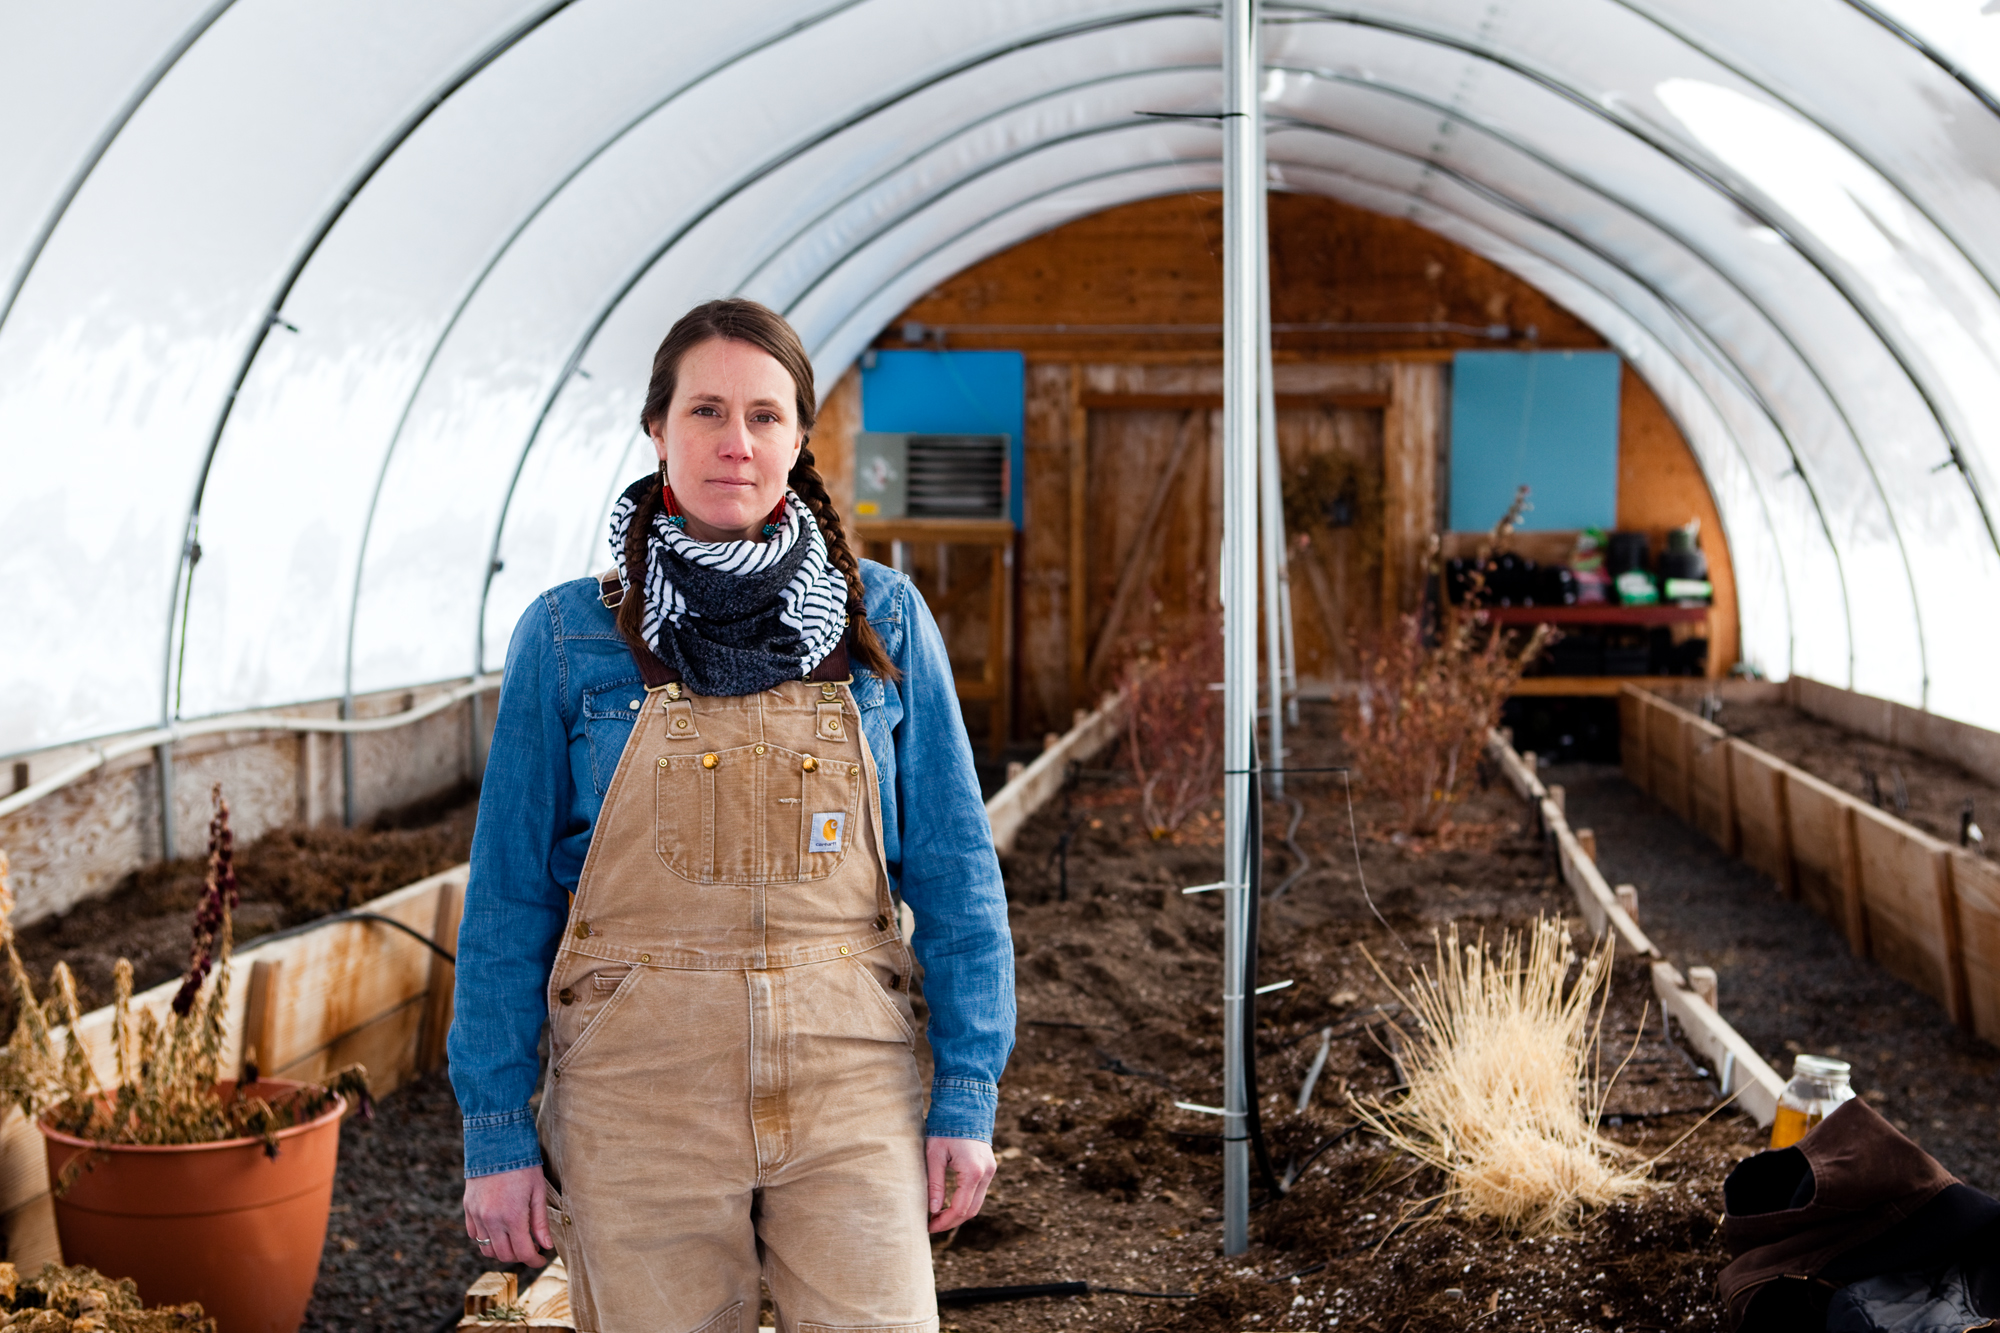 Spring Olson, 41, in a greenhouse at Bendistillery